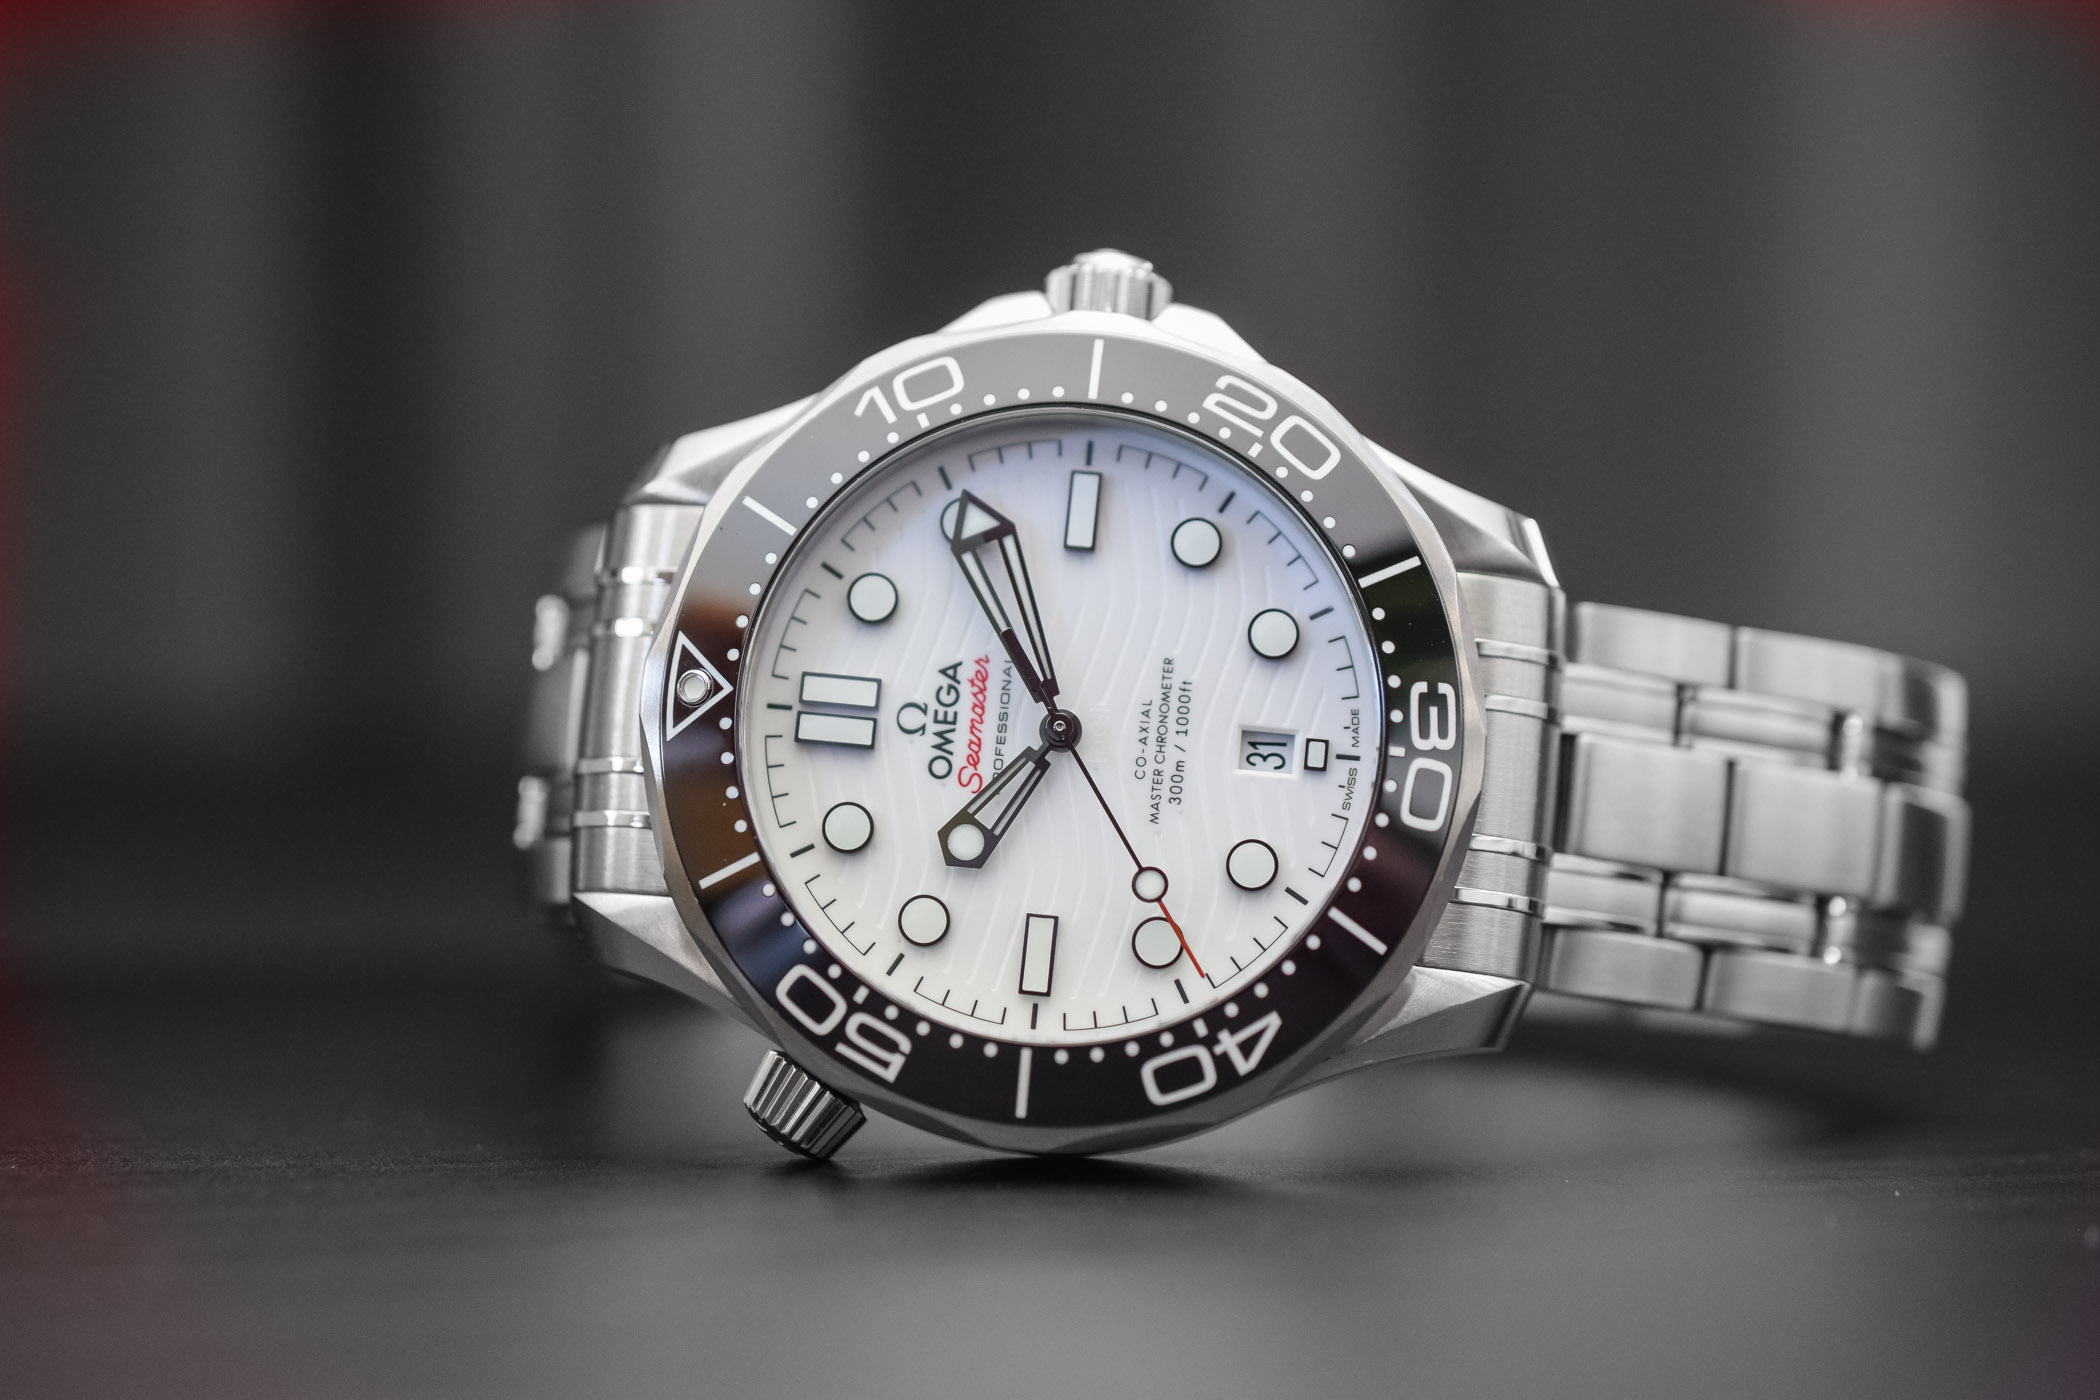 Introducing Omega Seamaster Diver 300m Now With White